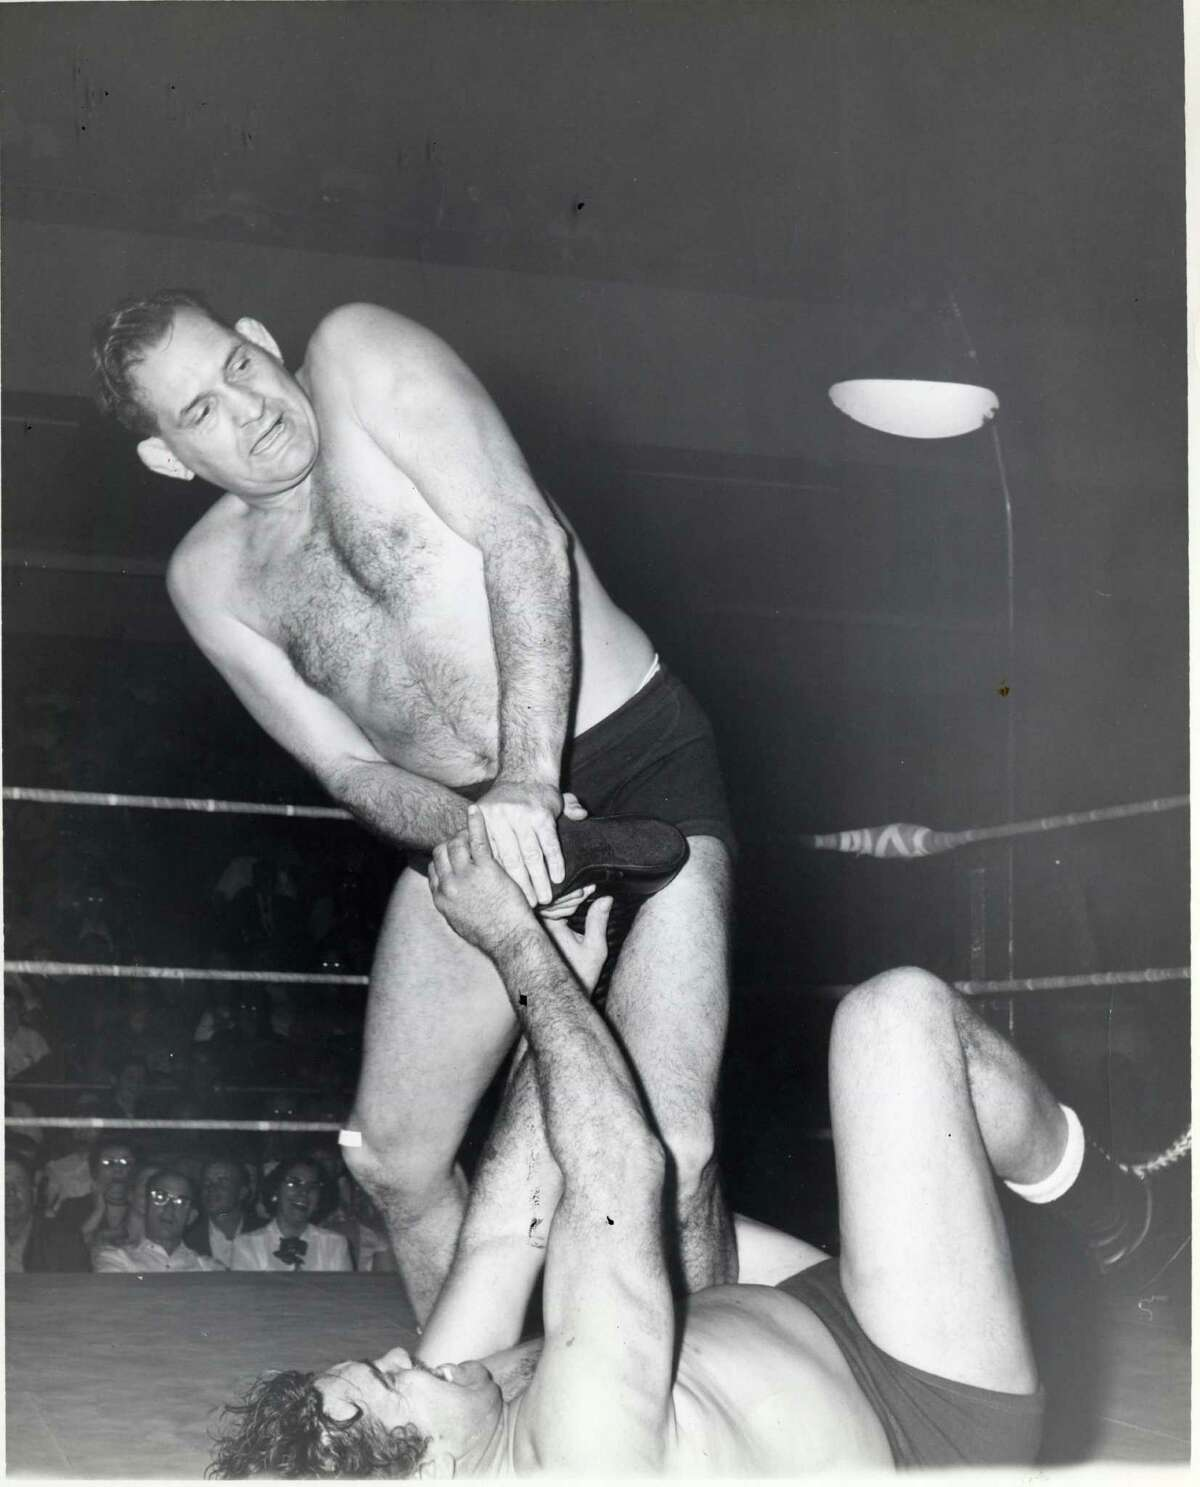 In his heyday, Paul Boesch was one of the nation's outstanding wrestlers.